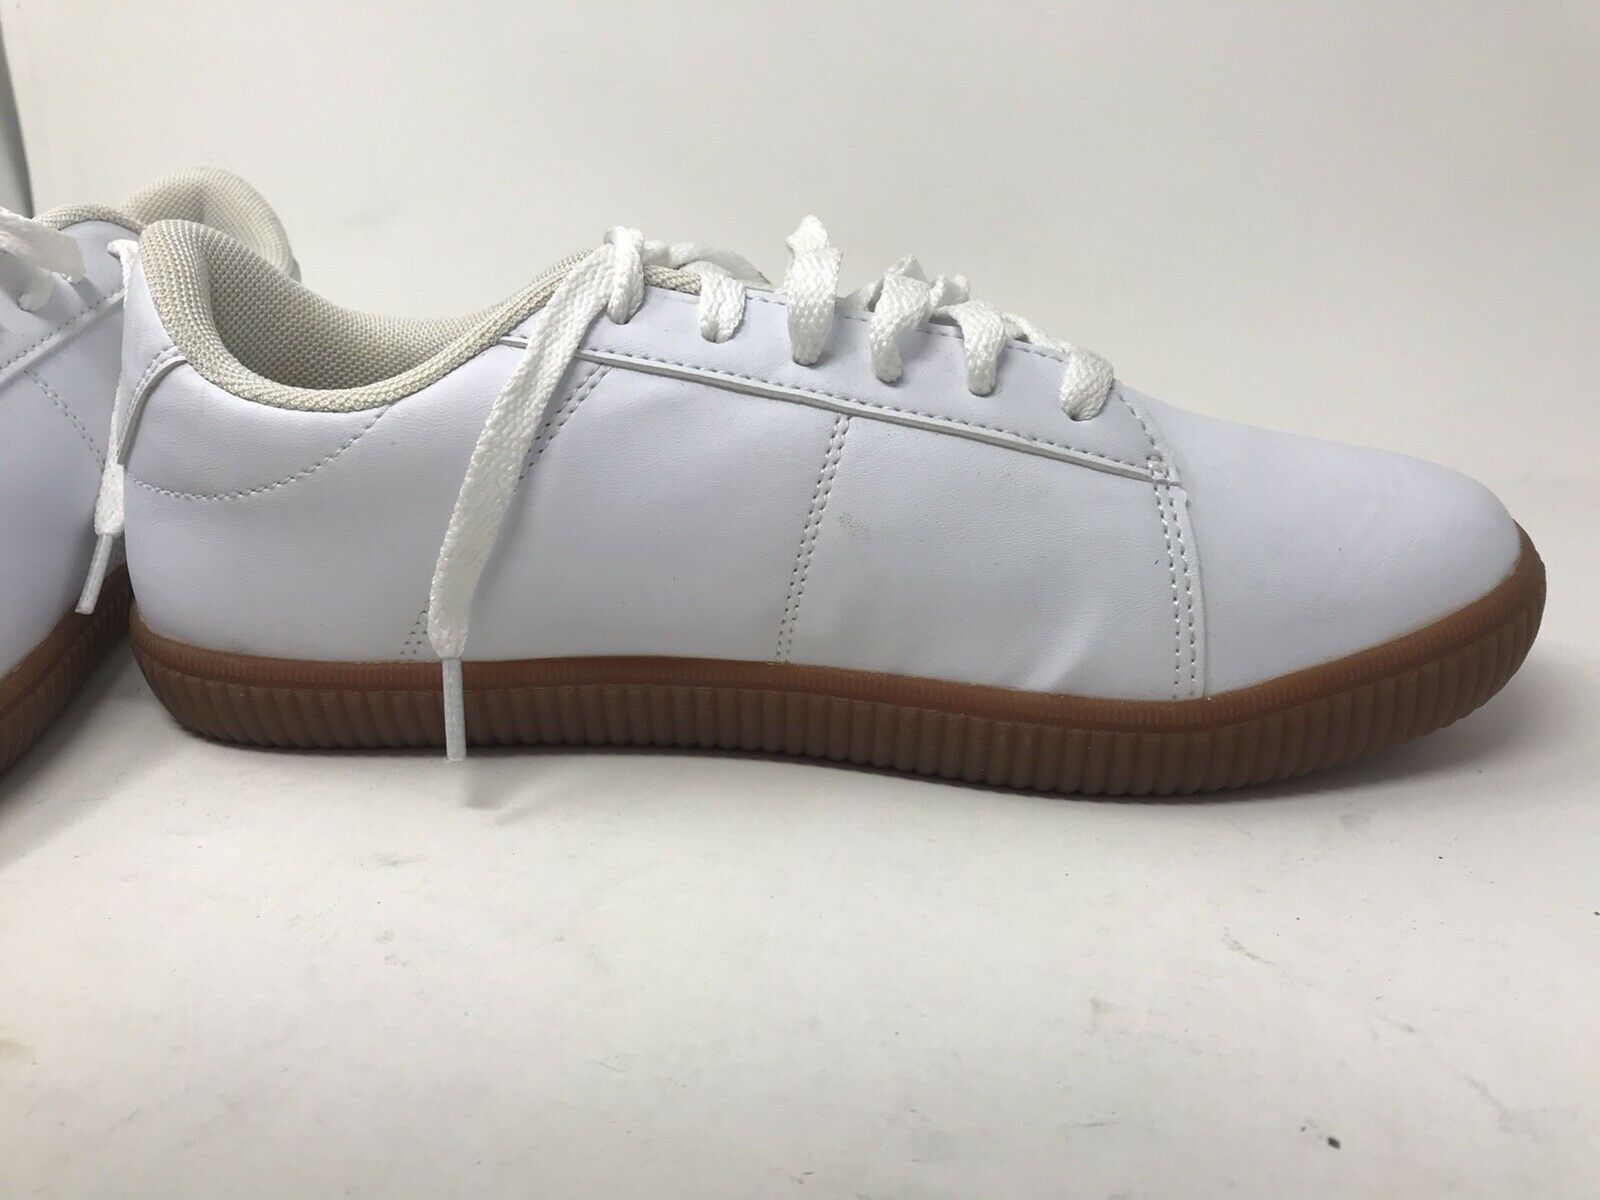 Comfortview White Shoes Women Rubber Sole 9WW worn once